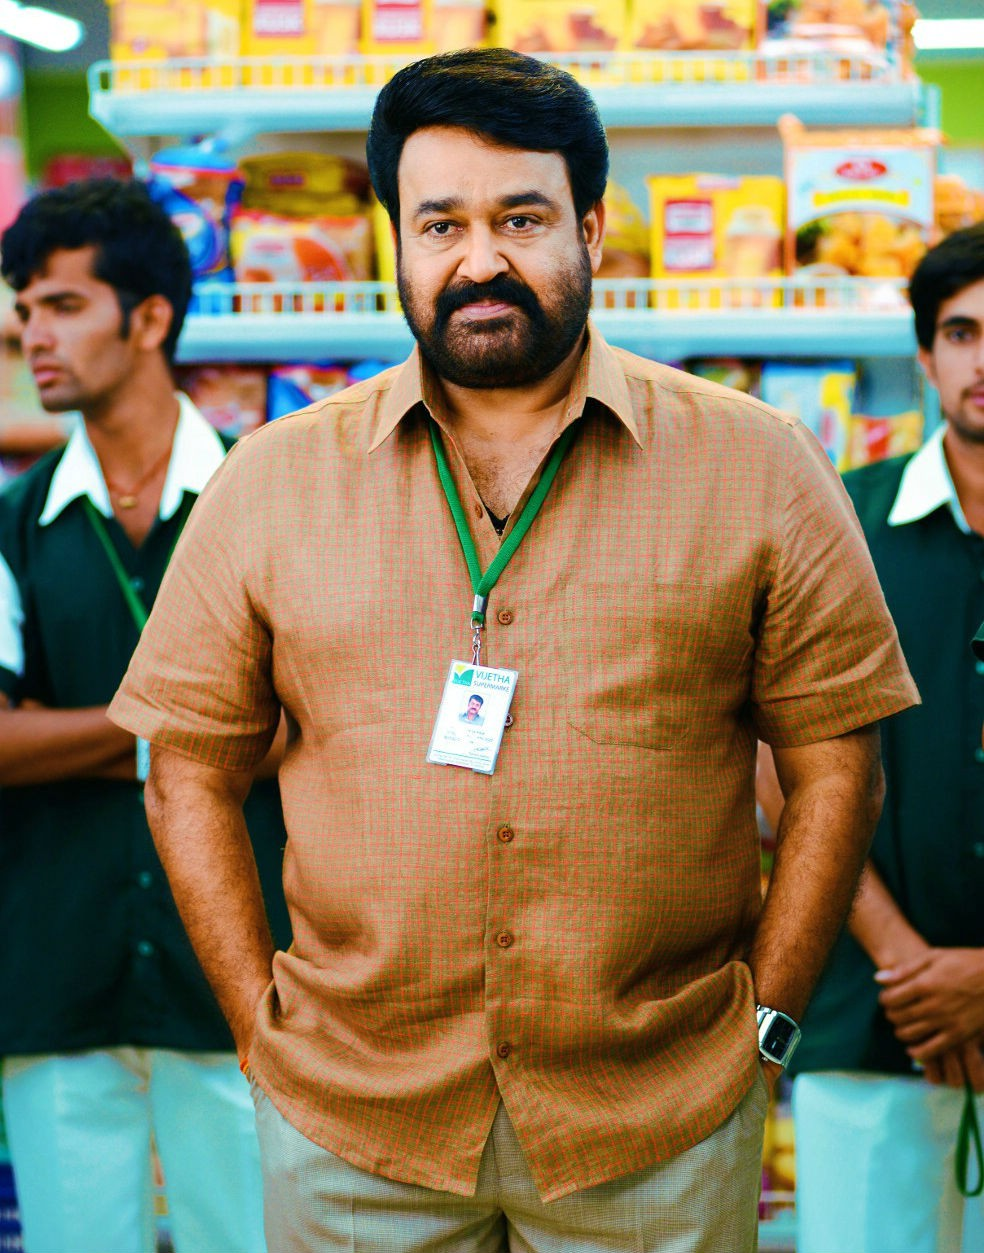 Namadhu,Namadhu movie stills,Mohanlal,Gauthami,Mohanlal and Gauthami,Raina Rao,Viswant,Urvasi,Anisha Ambrose,Gollapudi Maruthi Rao,Nassar,Vennela Kishore,Parachuri Venkateswara Rao,Praveen,Dhanraj,Namadhu movie pics,Namadhu movie images,Namadhu movie phot